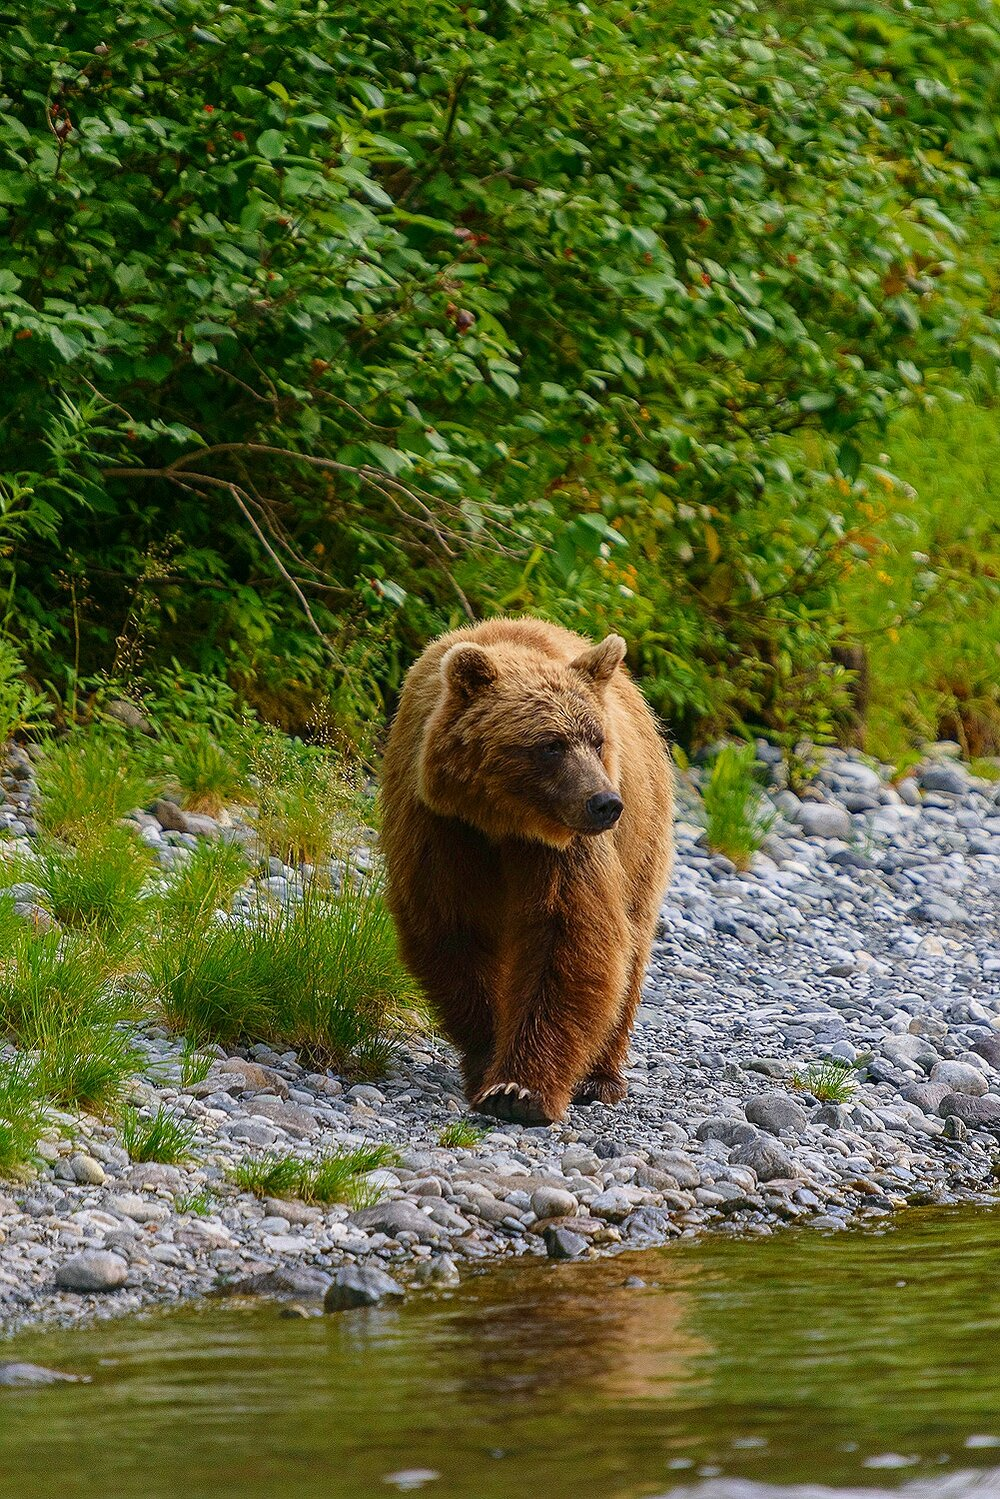 Taku River Grizzly Surveys the River For Salmon - 6 - British Columbia, Canada.jpg